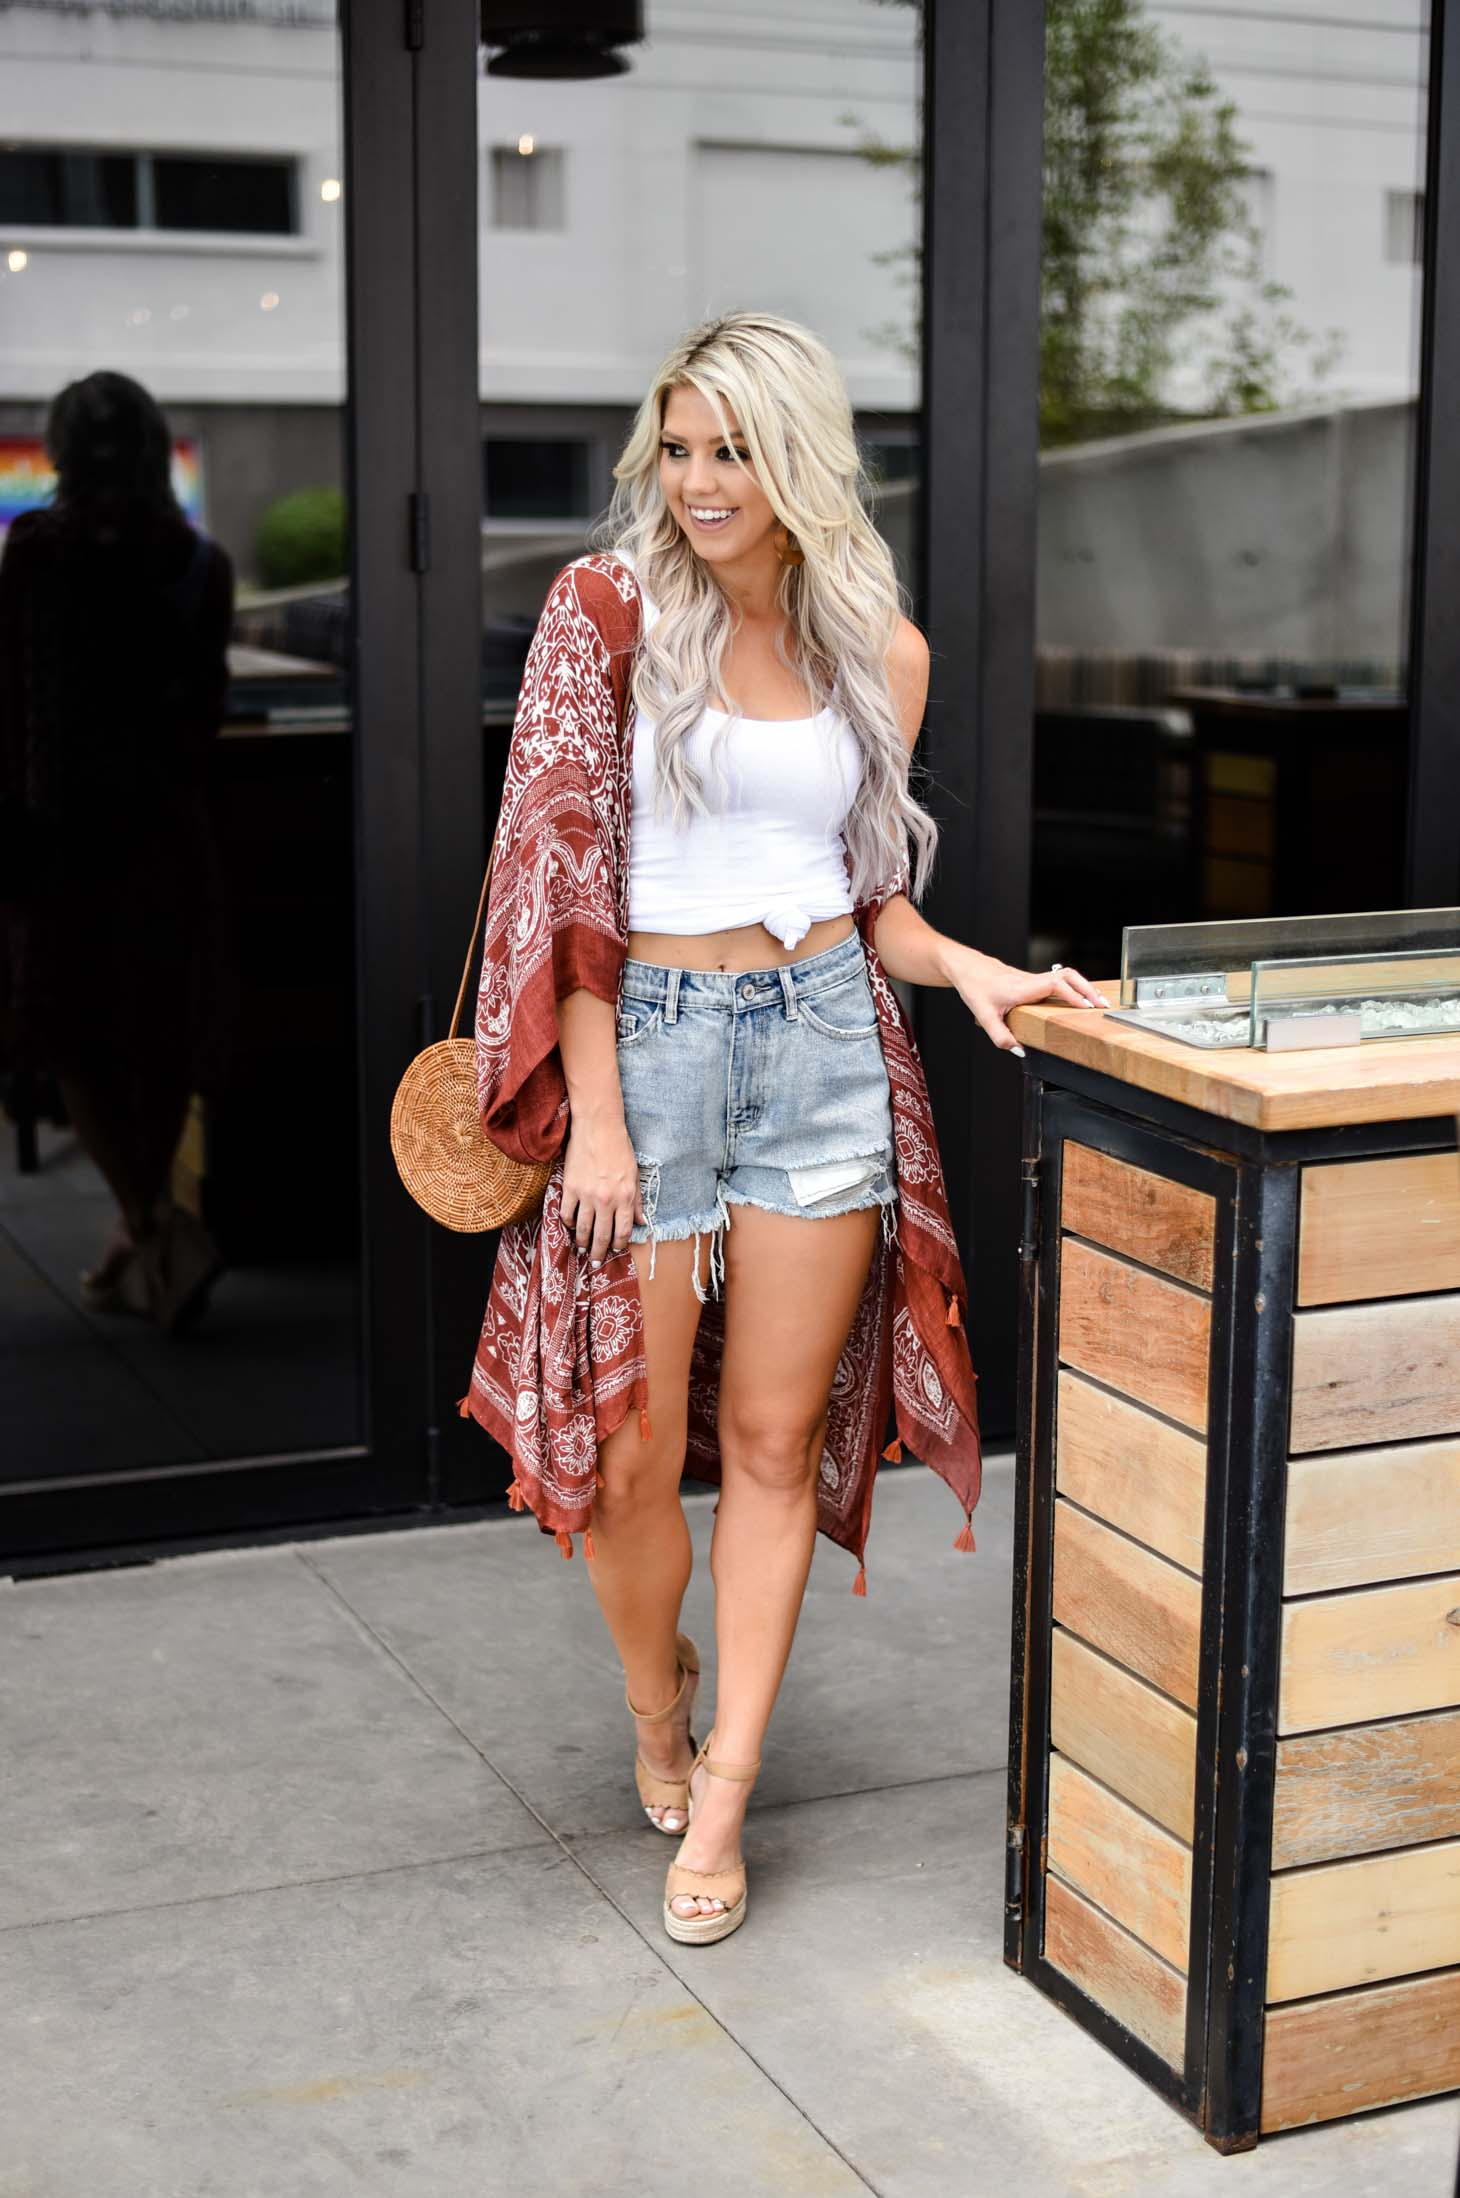 Erin Elizabeth of Wink and a Twirl shares the cutest casual summer look with Vici Dolls with a kimono and denim shorts